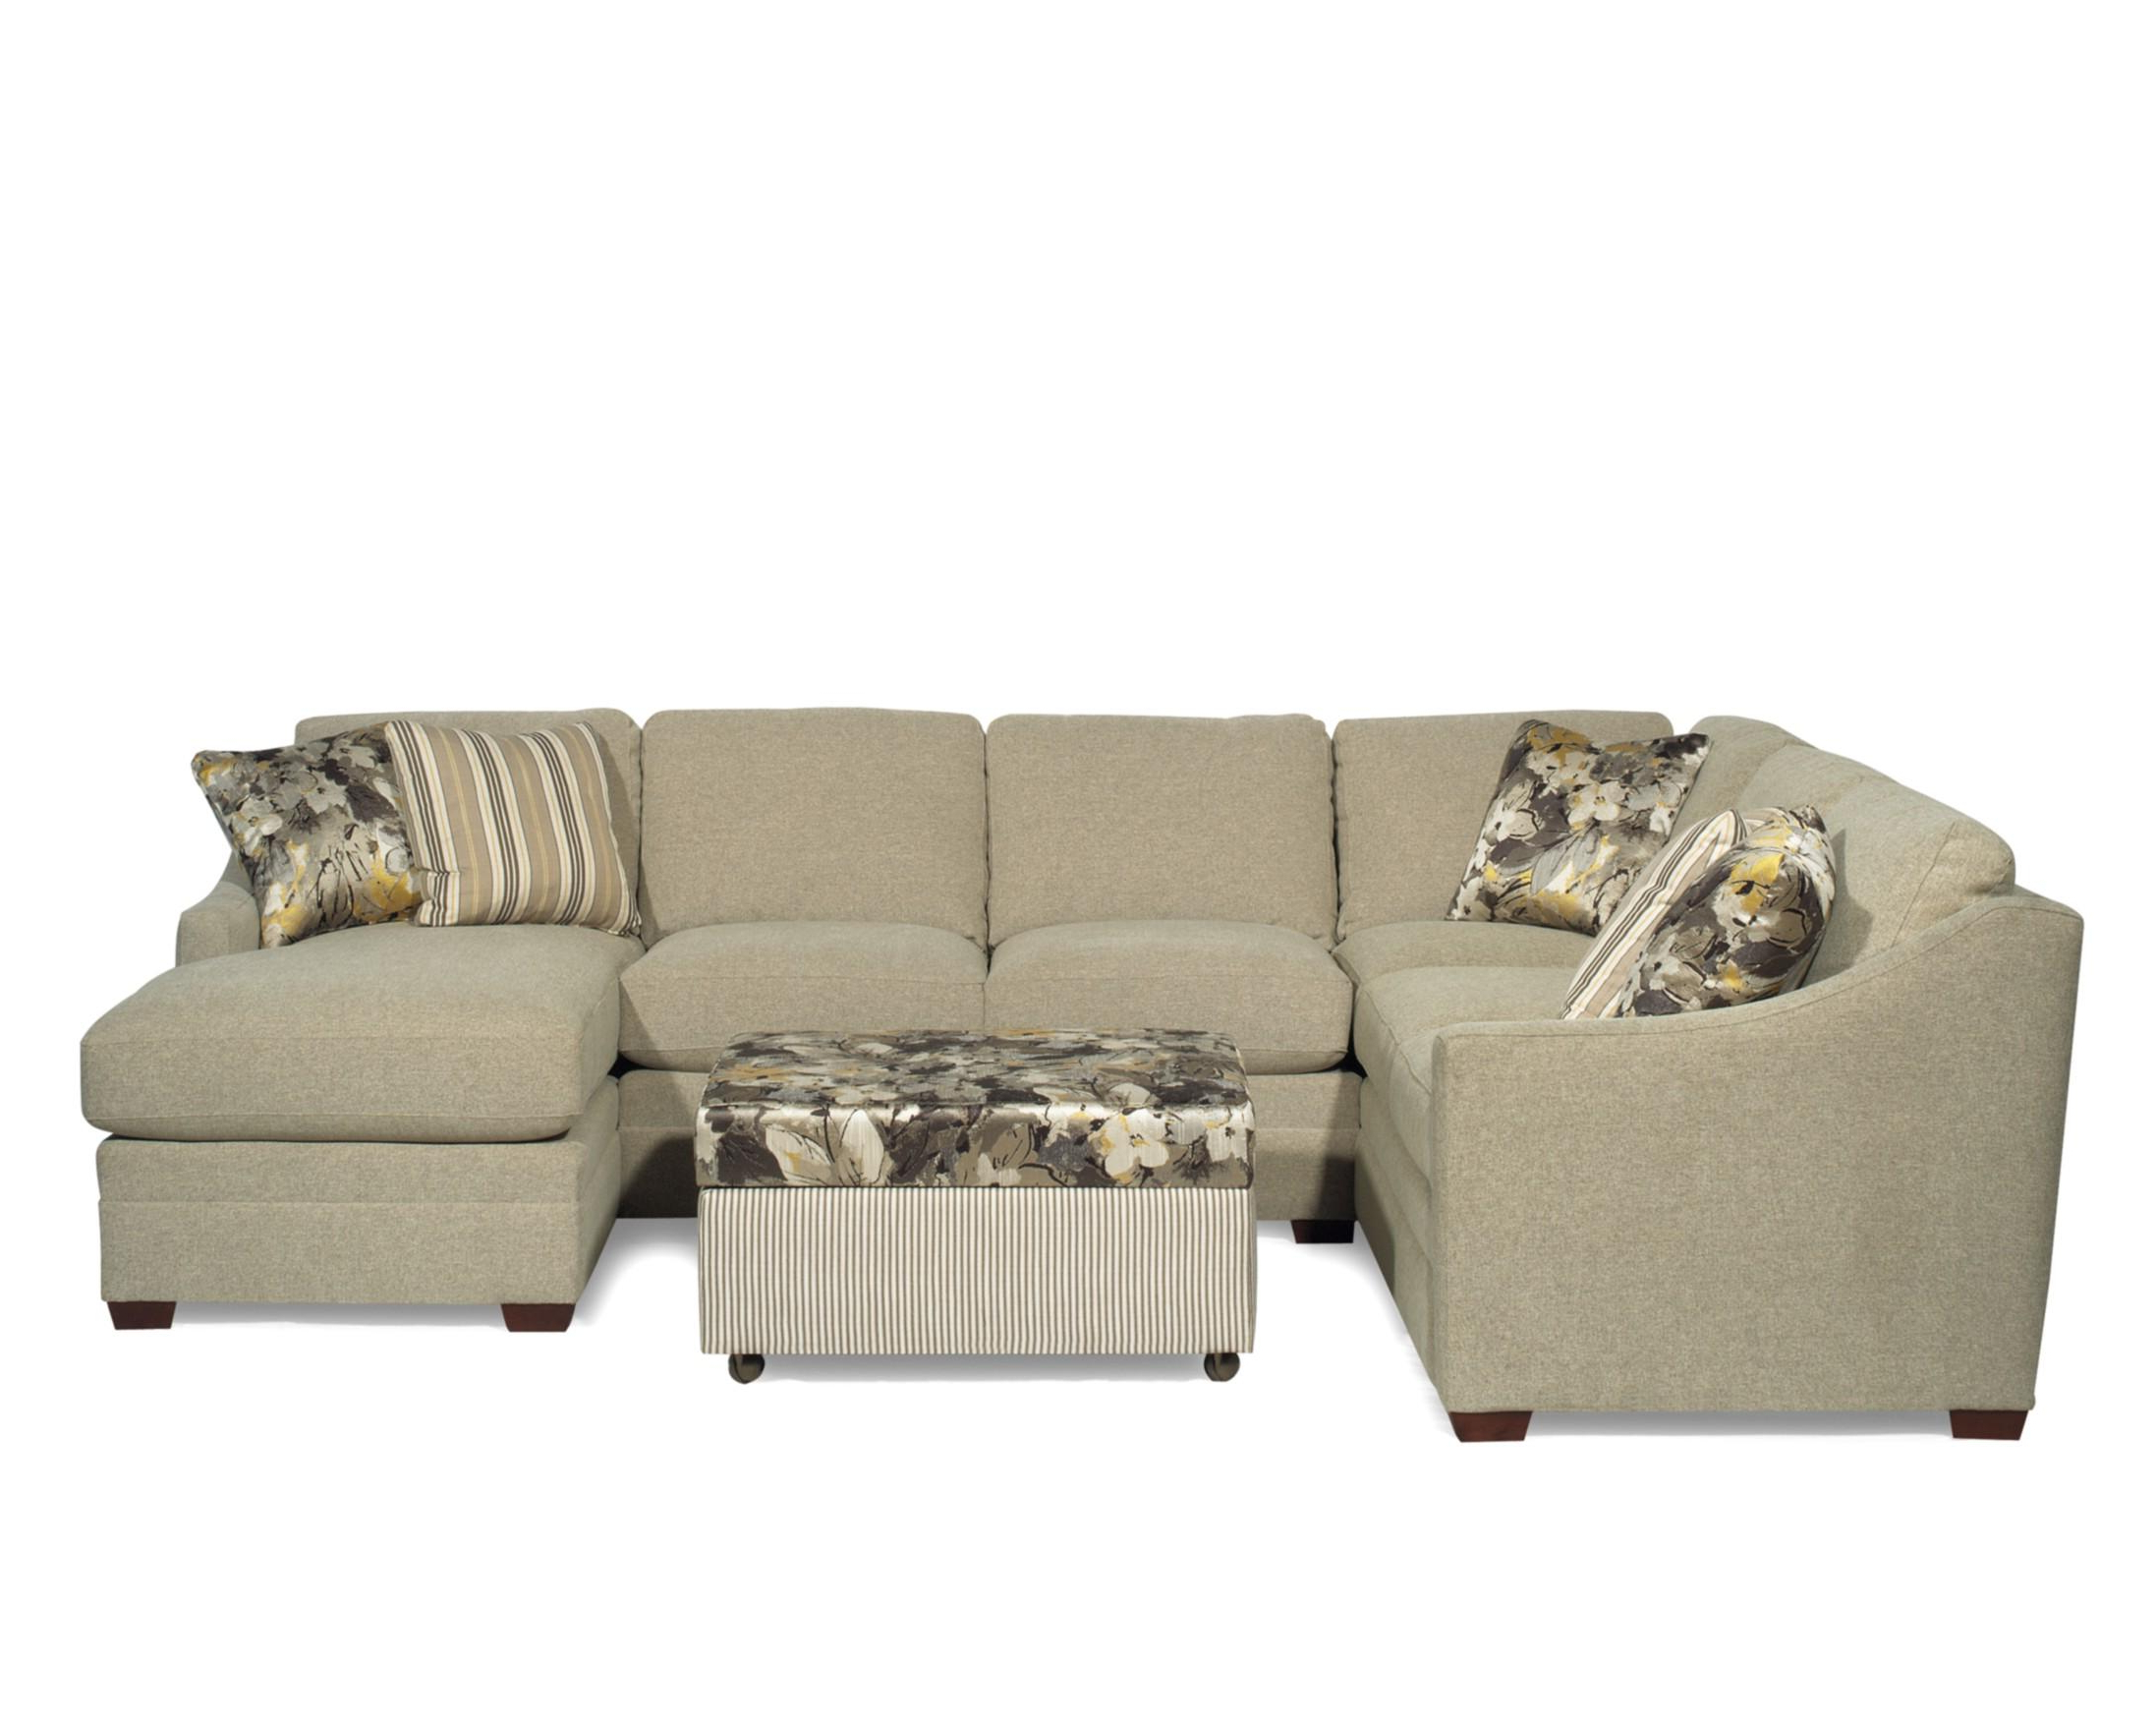 Craftmaster F9 Design Options <b>customizable</b> 3 Piece Sectional Within 2019 Josephine 2 Piece Sectionals With Laf Sofa (View 12 of 20)